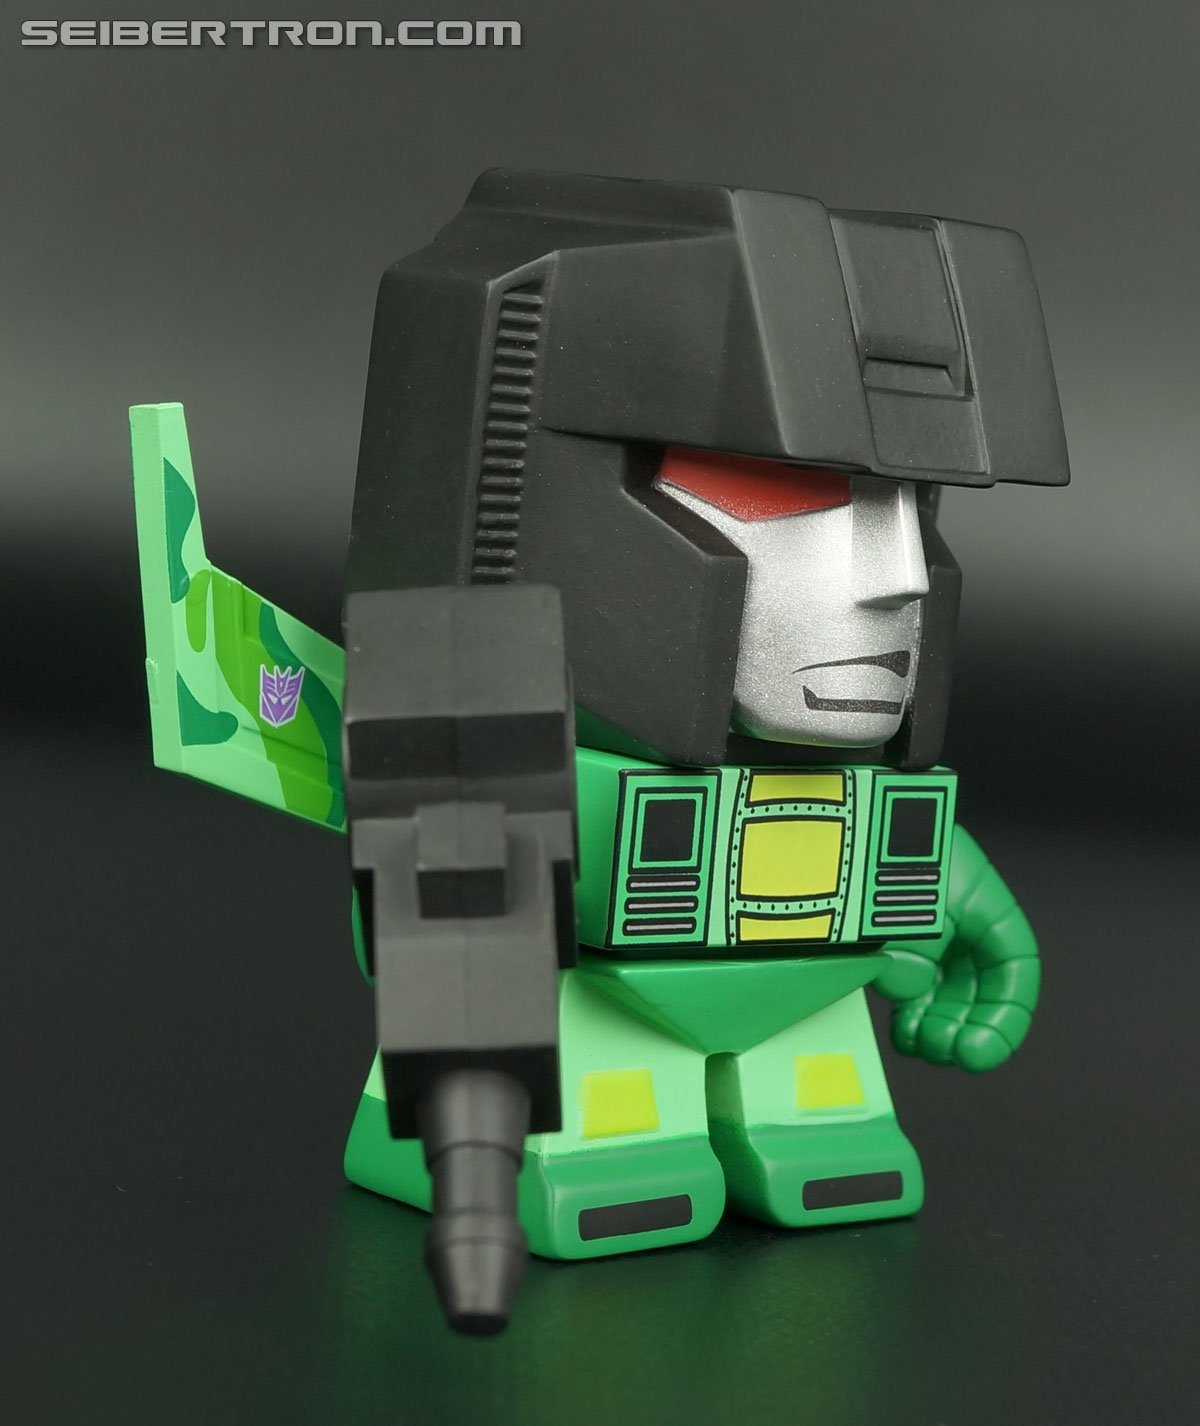 Transformers Loyal Subjects Rainmaker (Green) (Acid Storm) (Image #17 of 40)